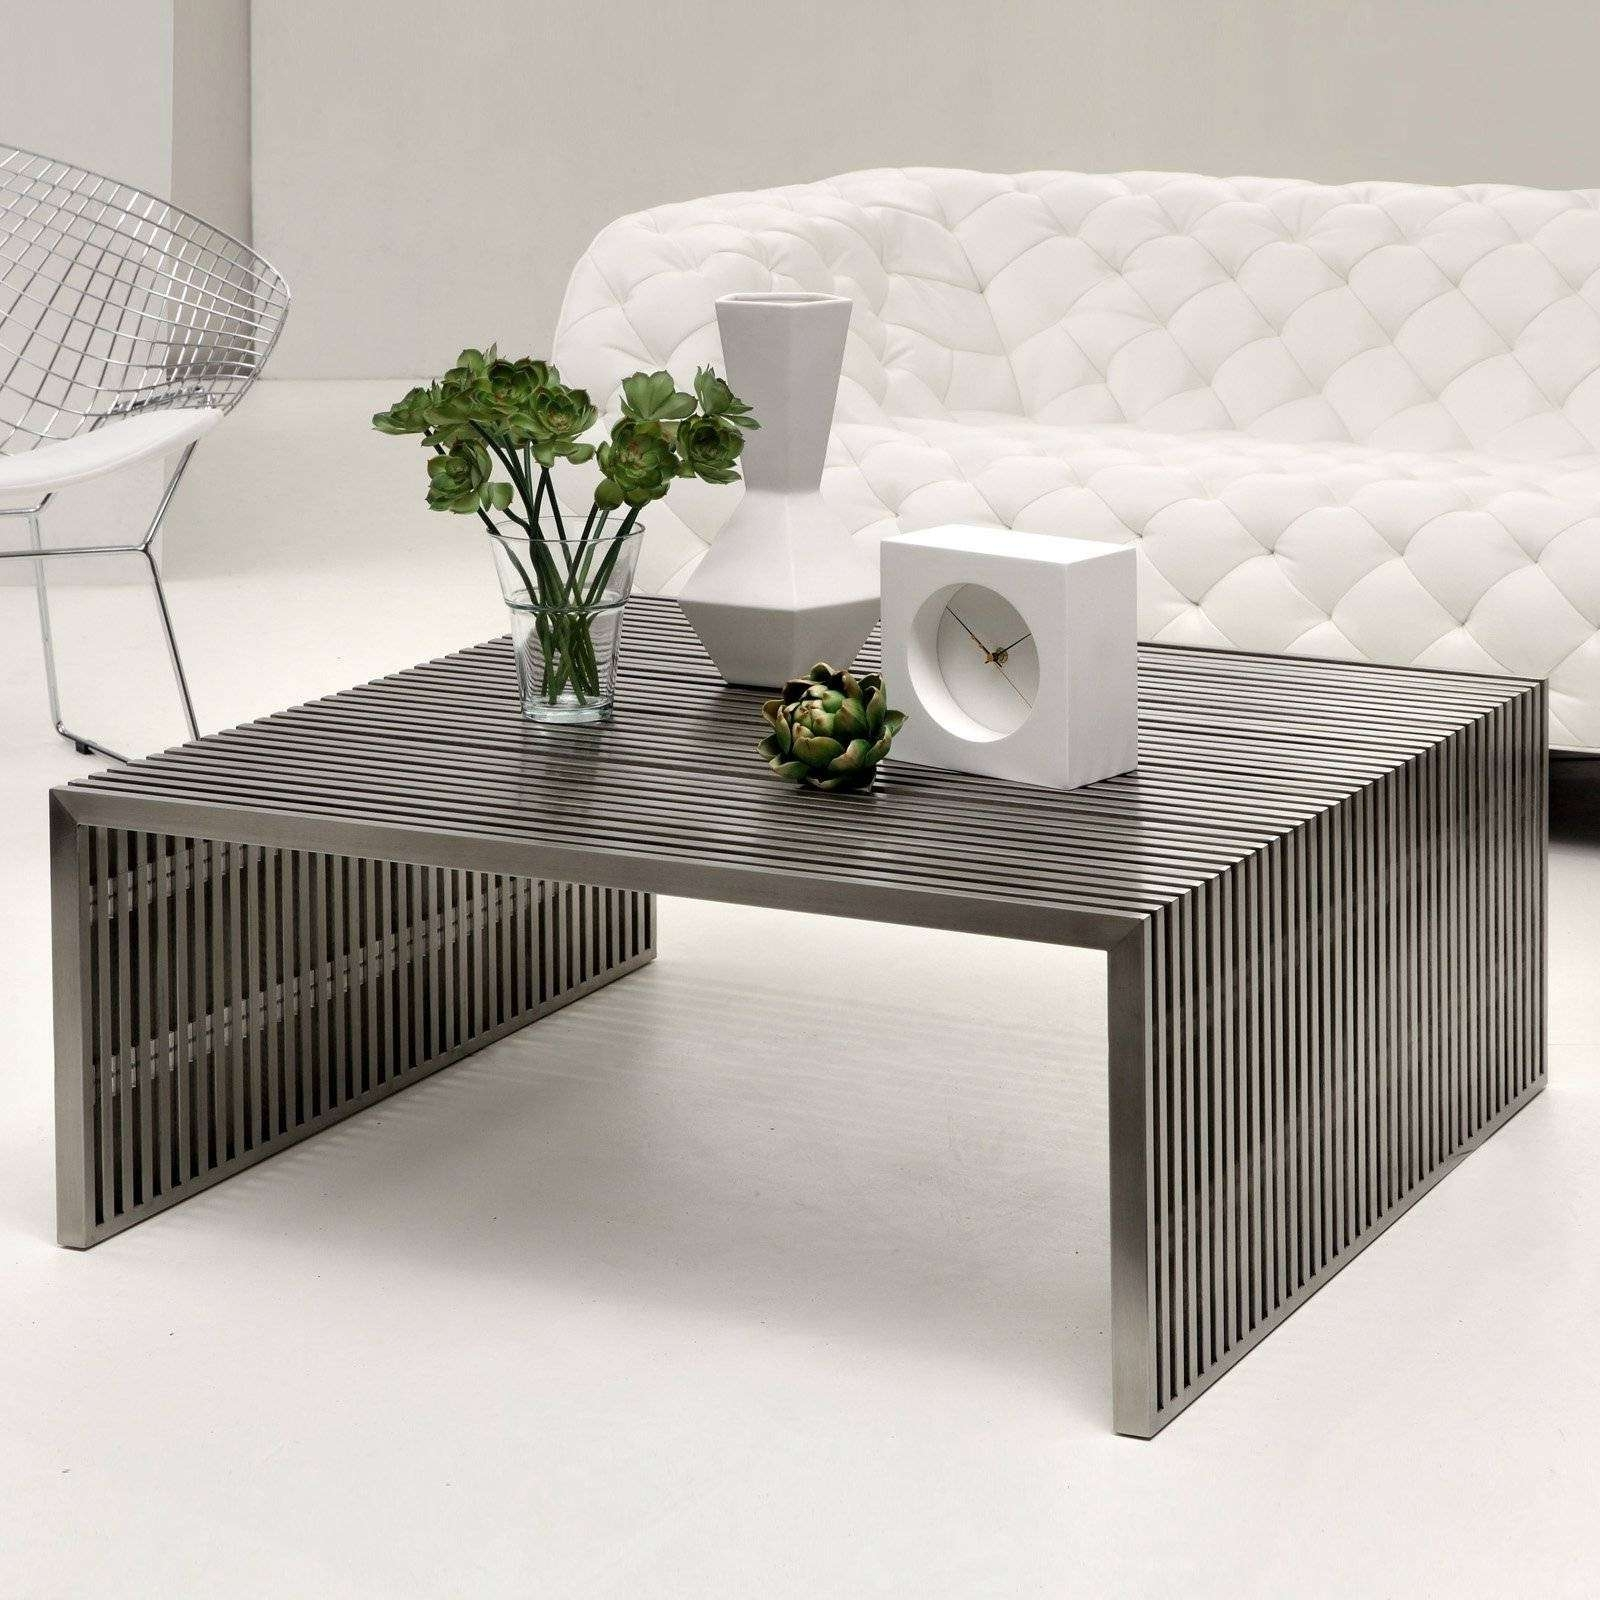 Popular Square Coffee Table Modern With Coffee Table : Contemporary Concretefee Table Square Latest (View 17 of 20)